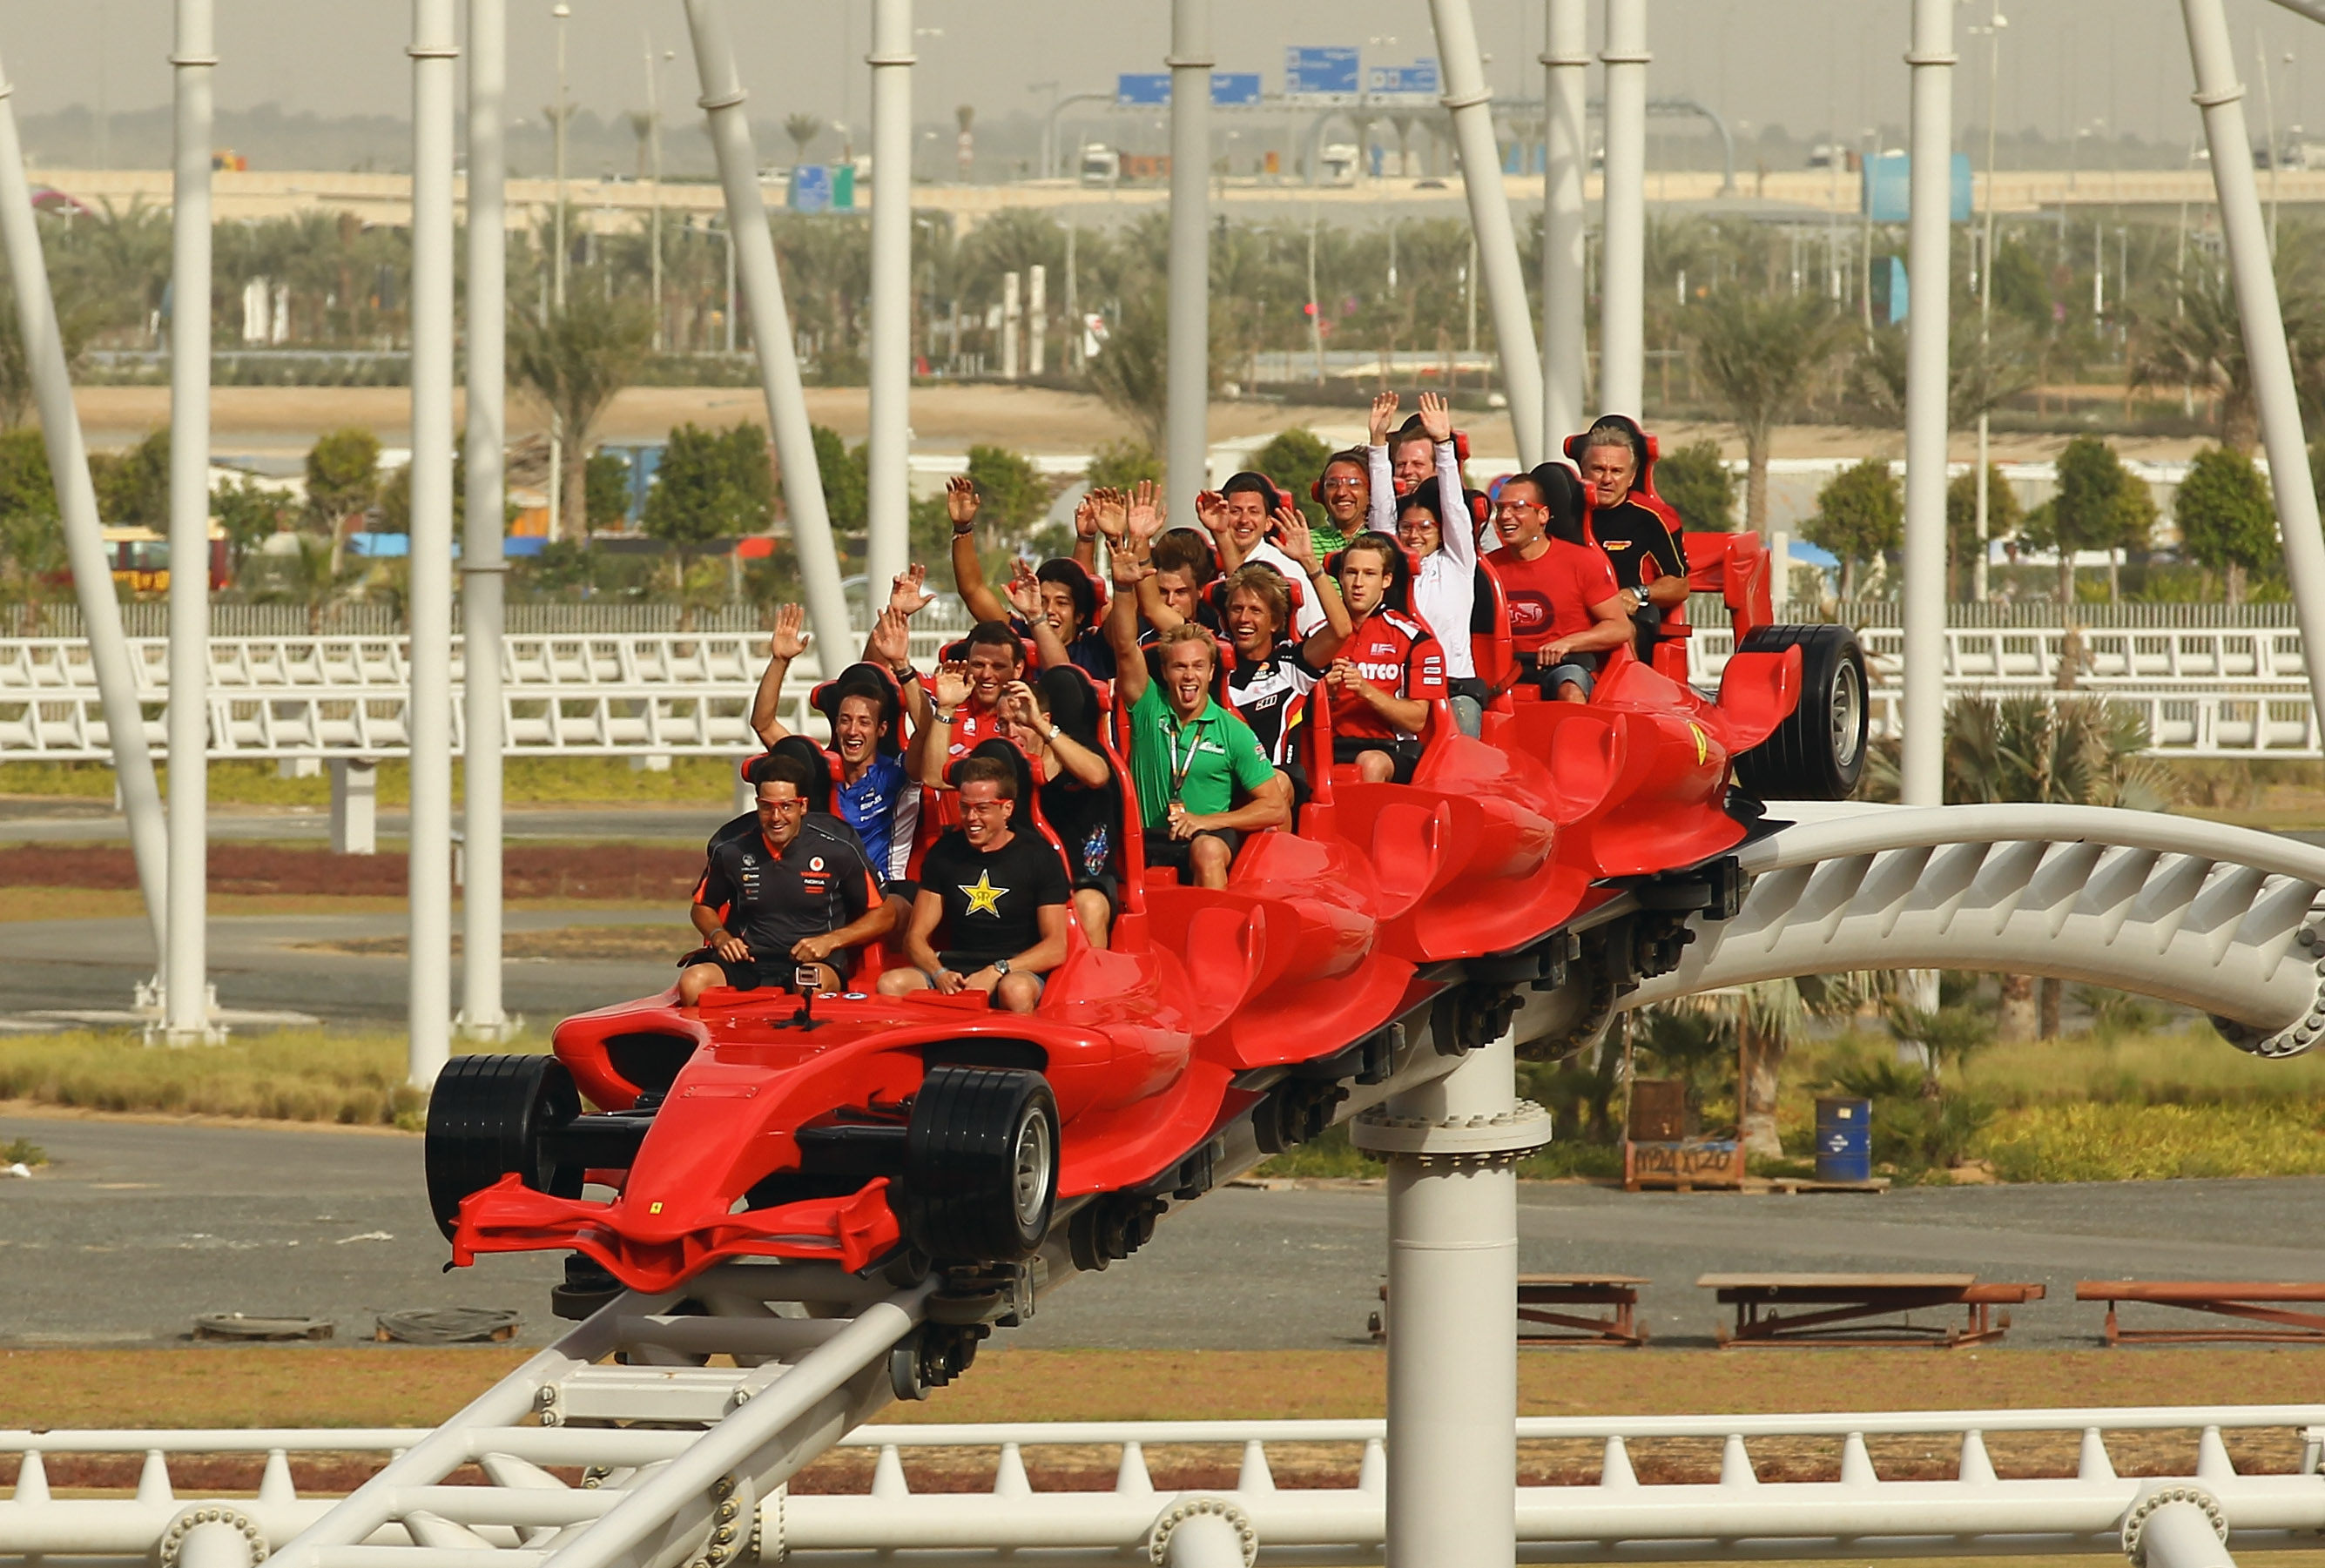 Going Out: Ferrari World Abu Dhabi promises red letter day for all